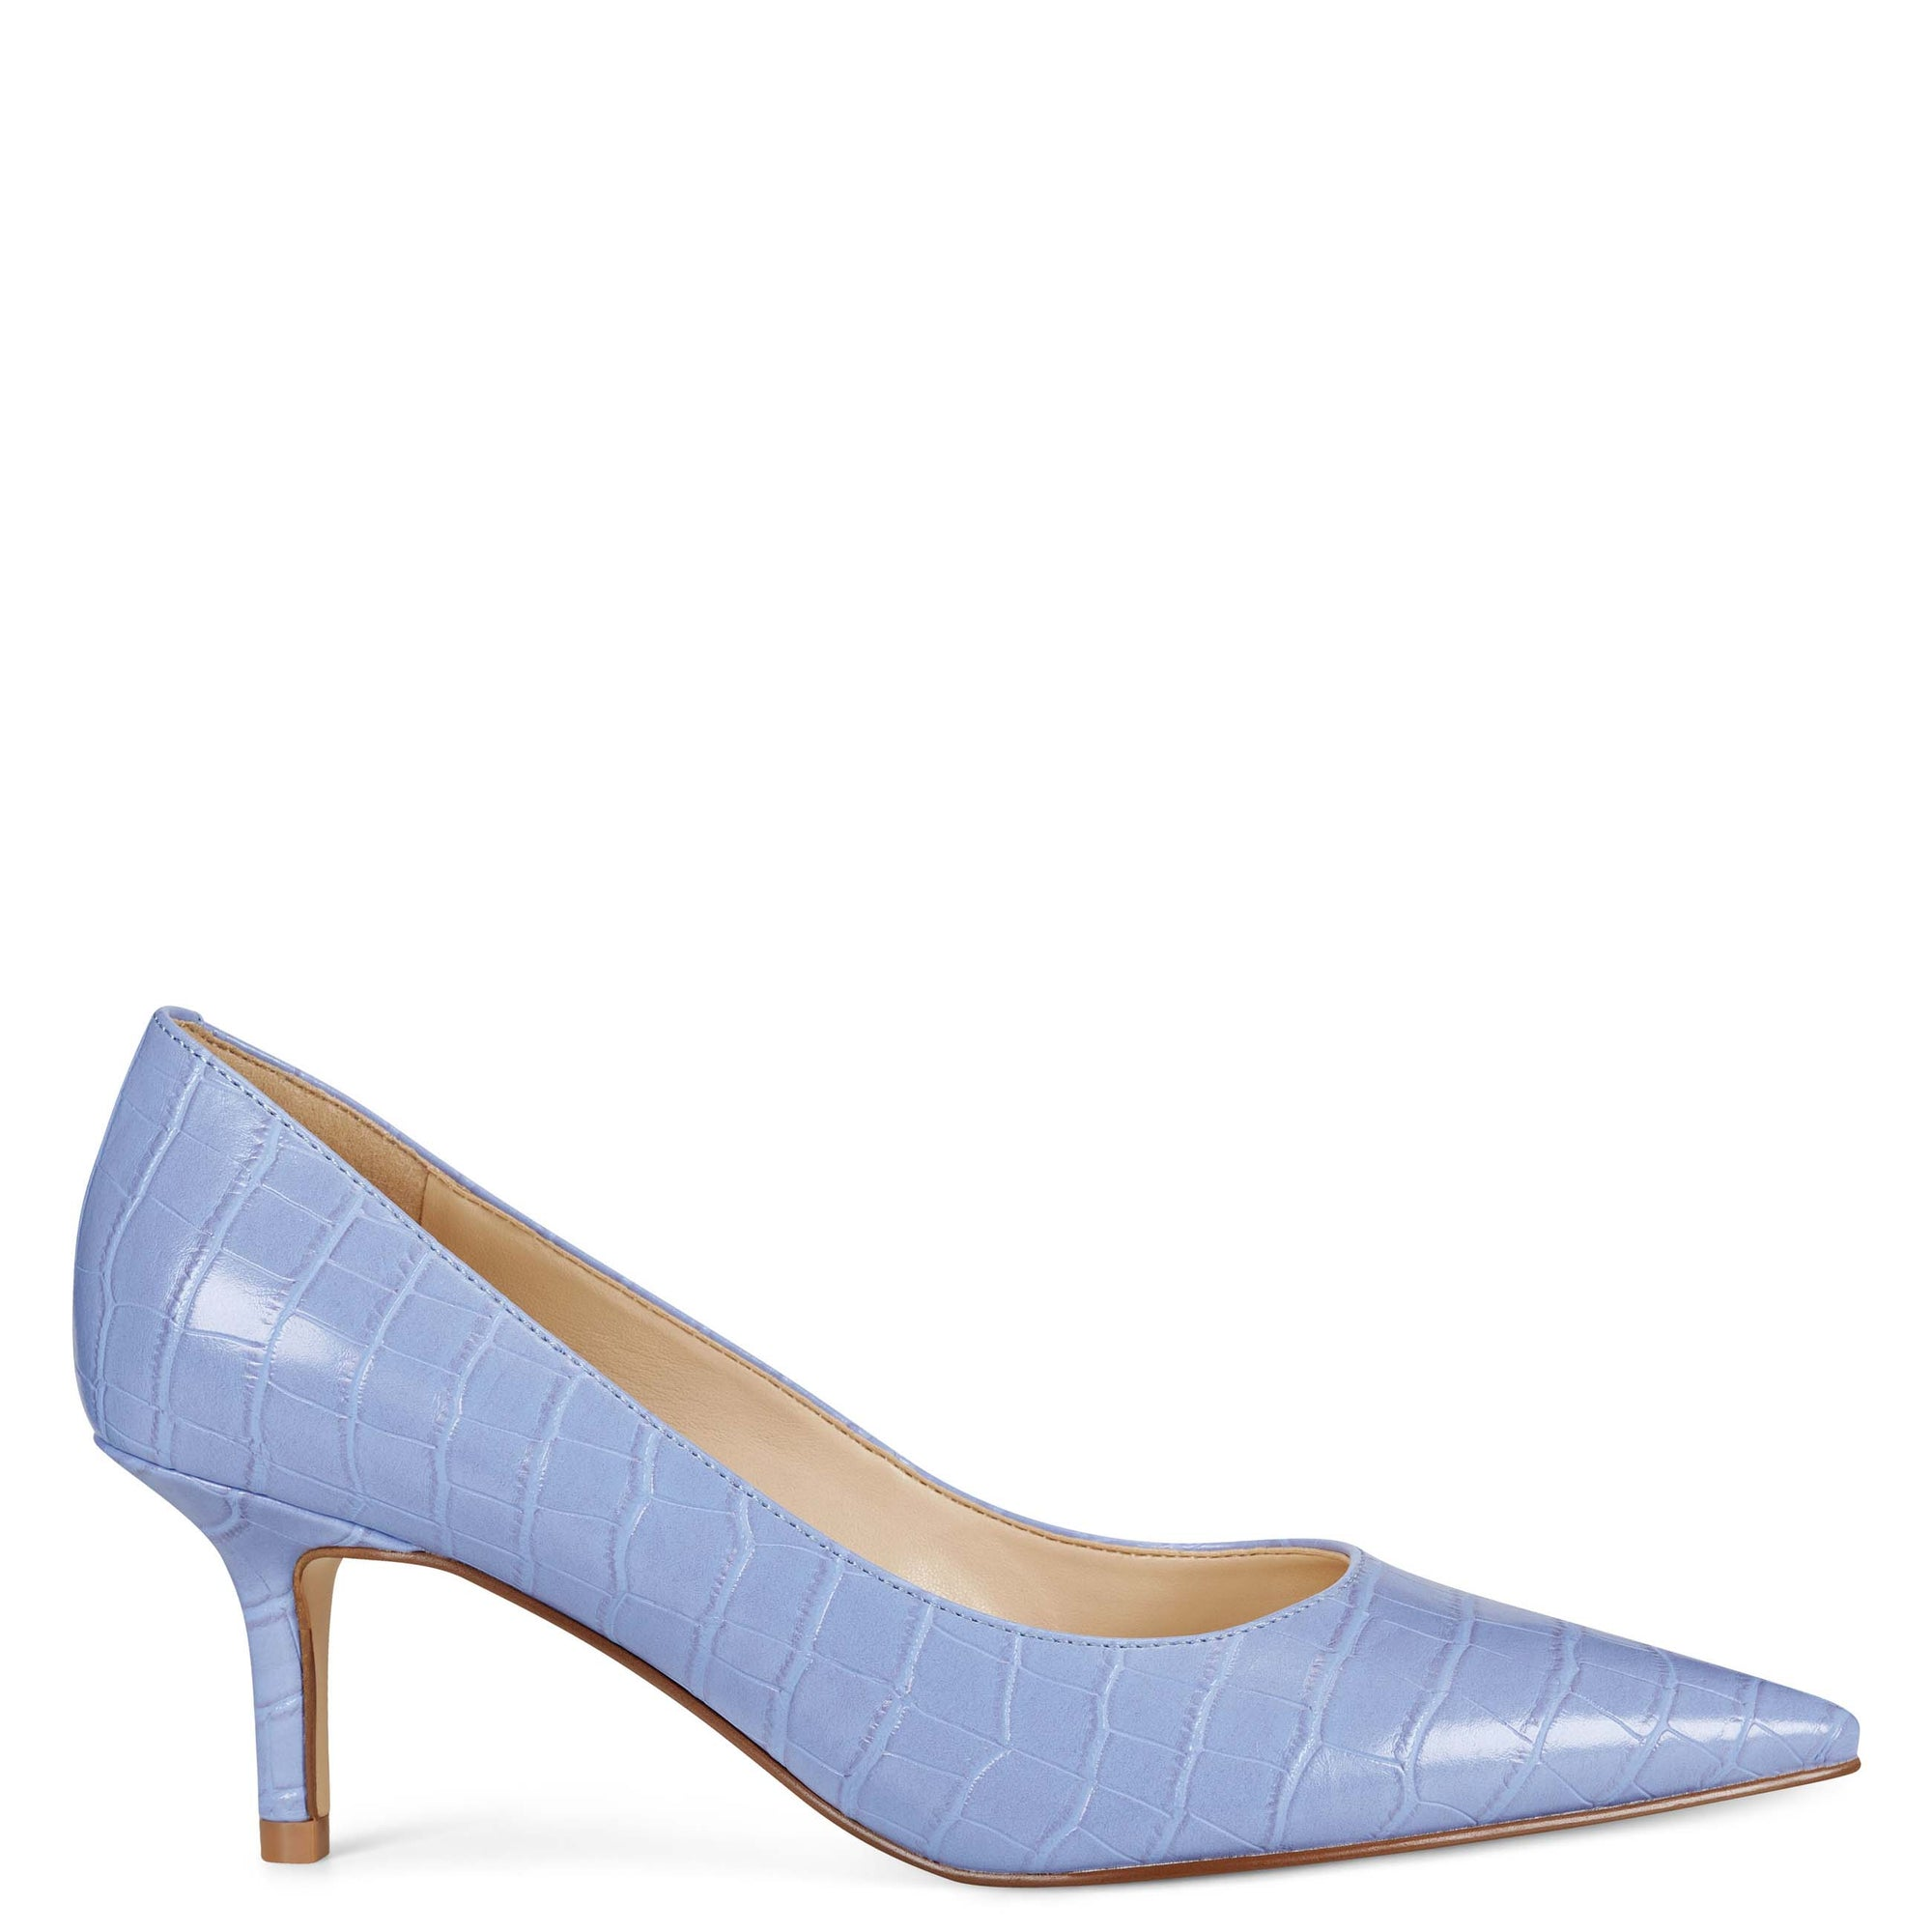 arlene-dress-pumps-in-blue-embossed-croco